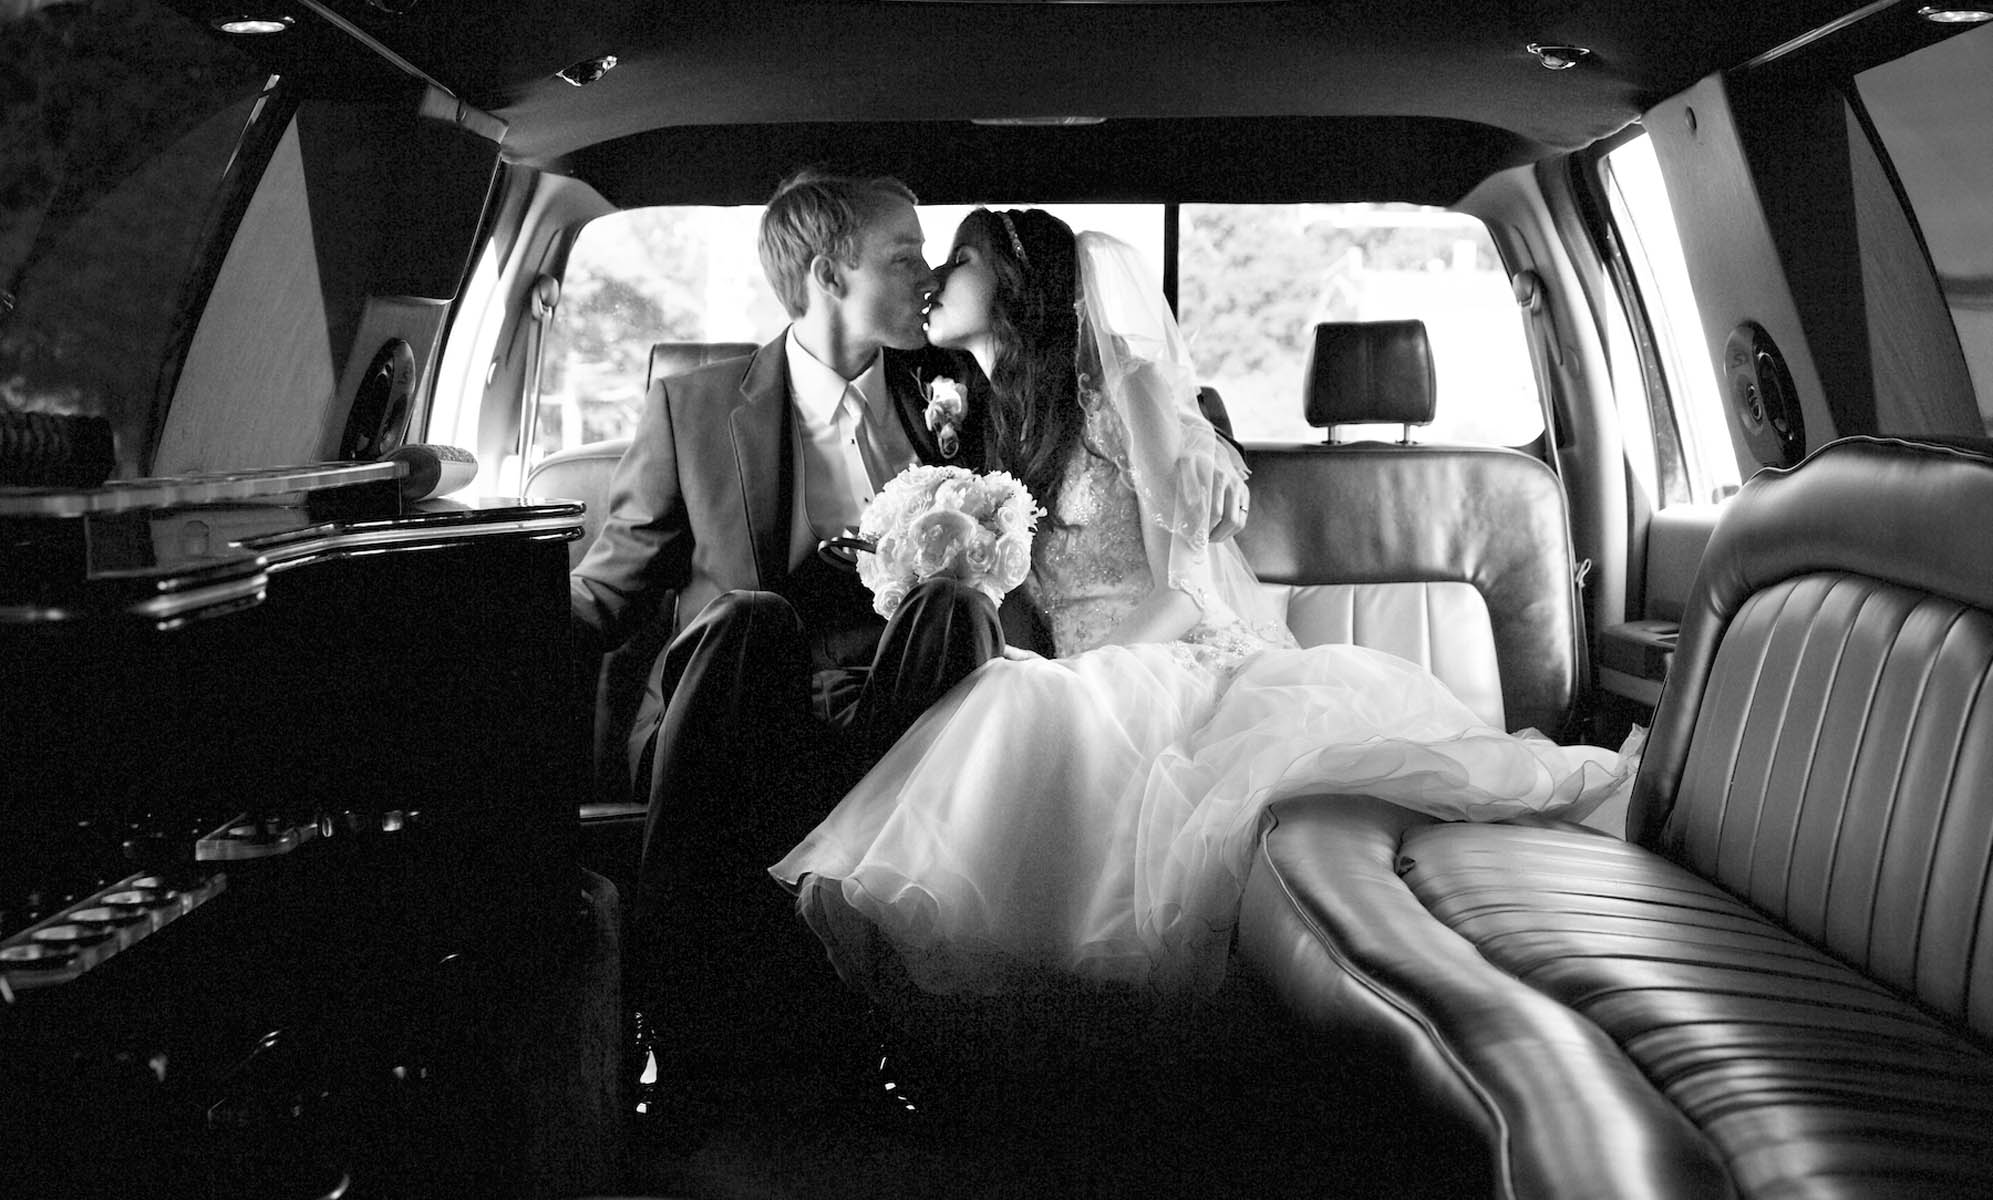 Private moment in the limousine, Alissa & Brandon's wedding at Our Saviour Catholic Church, Jacksonville. Wedding photography by Tiffany & Steve Warmowski.